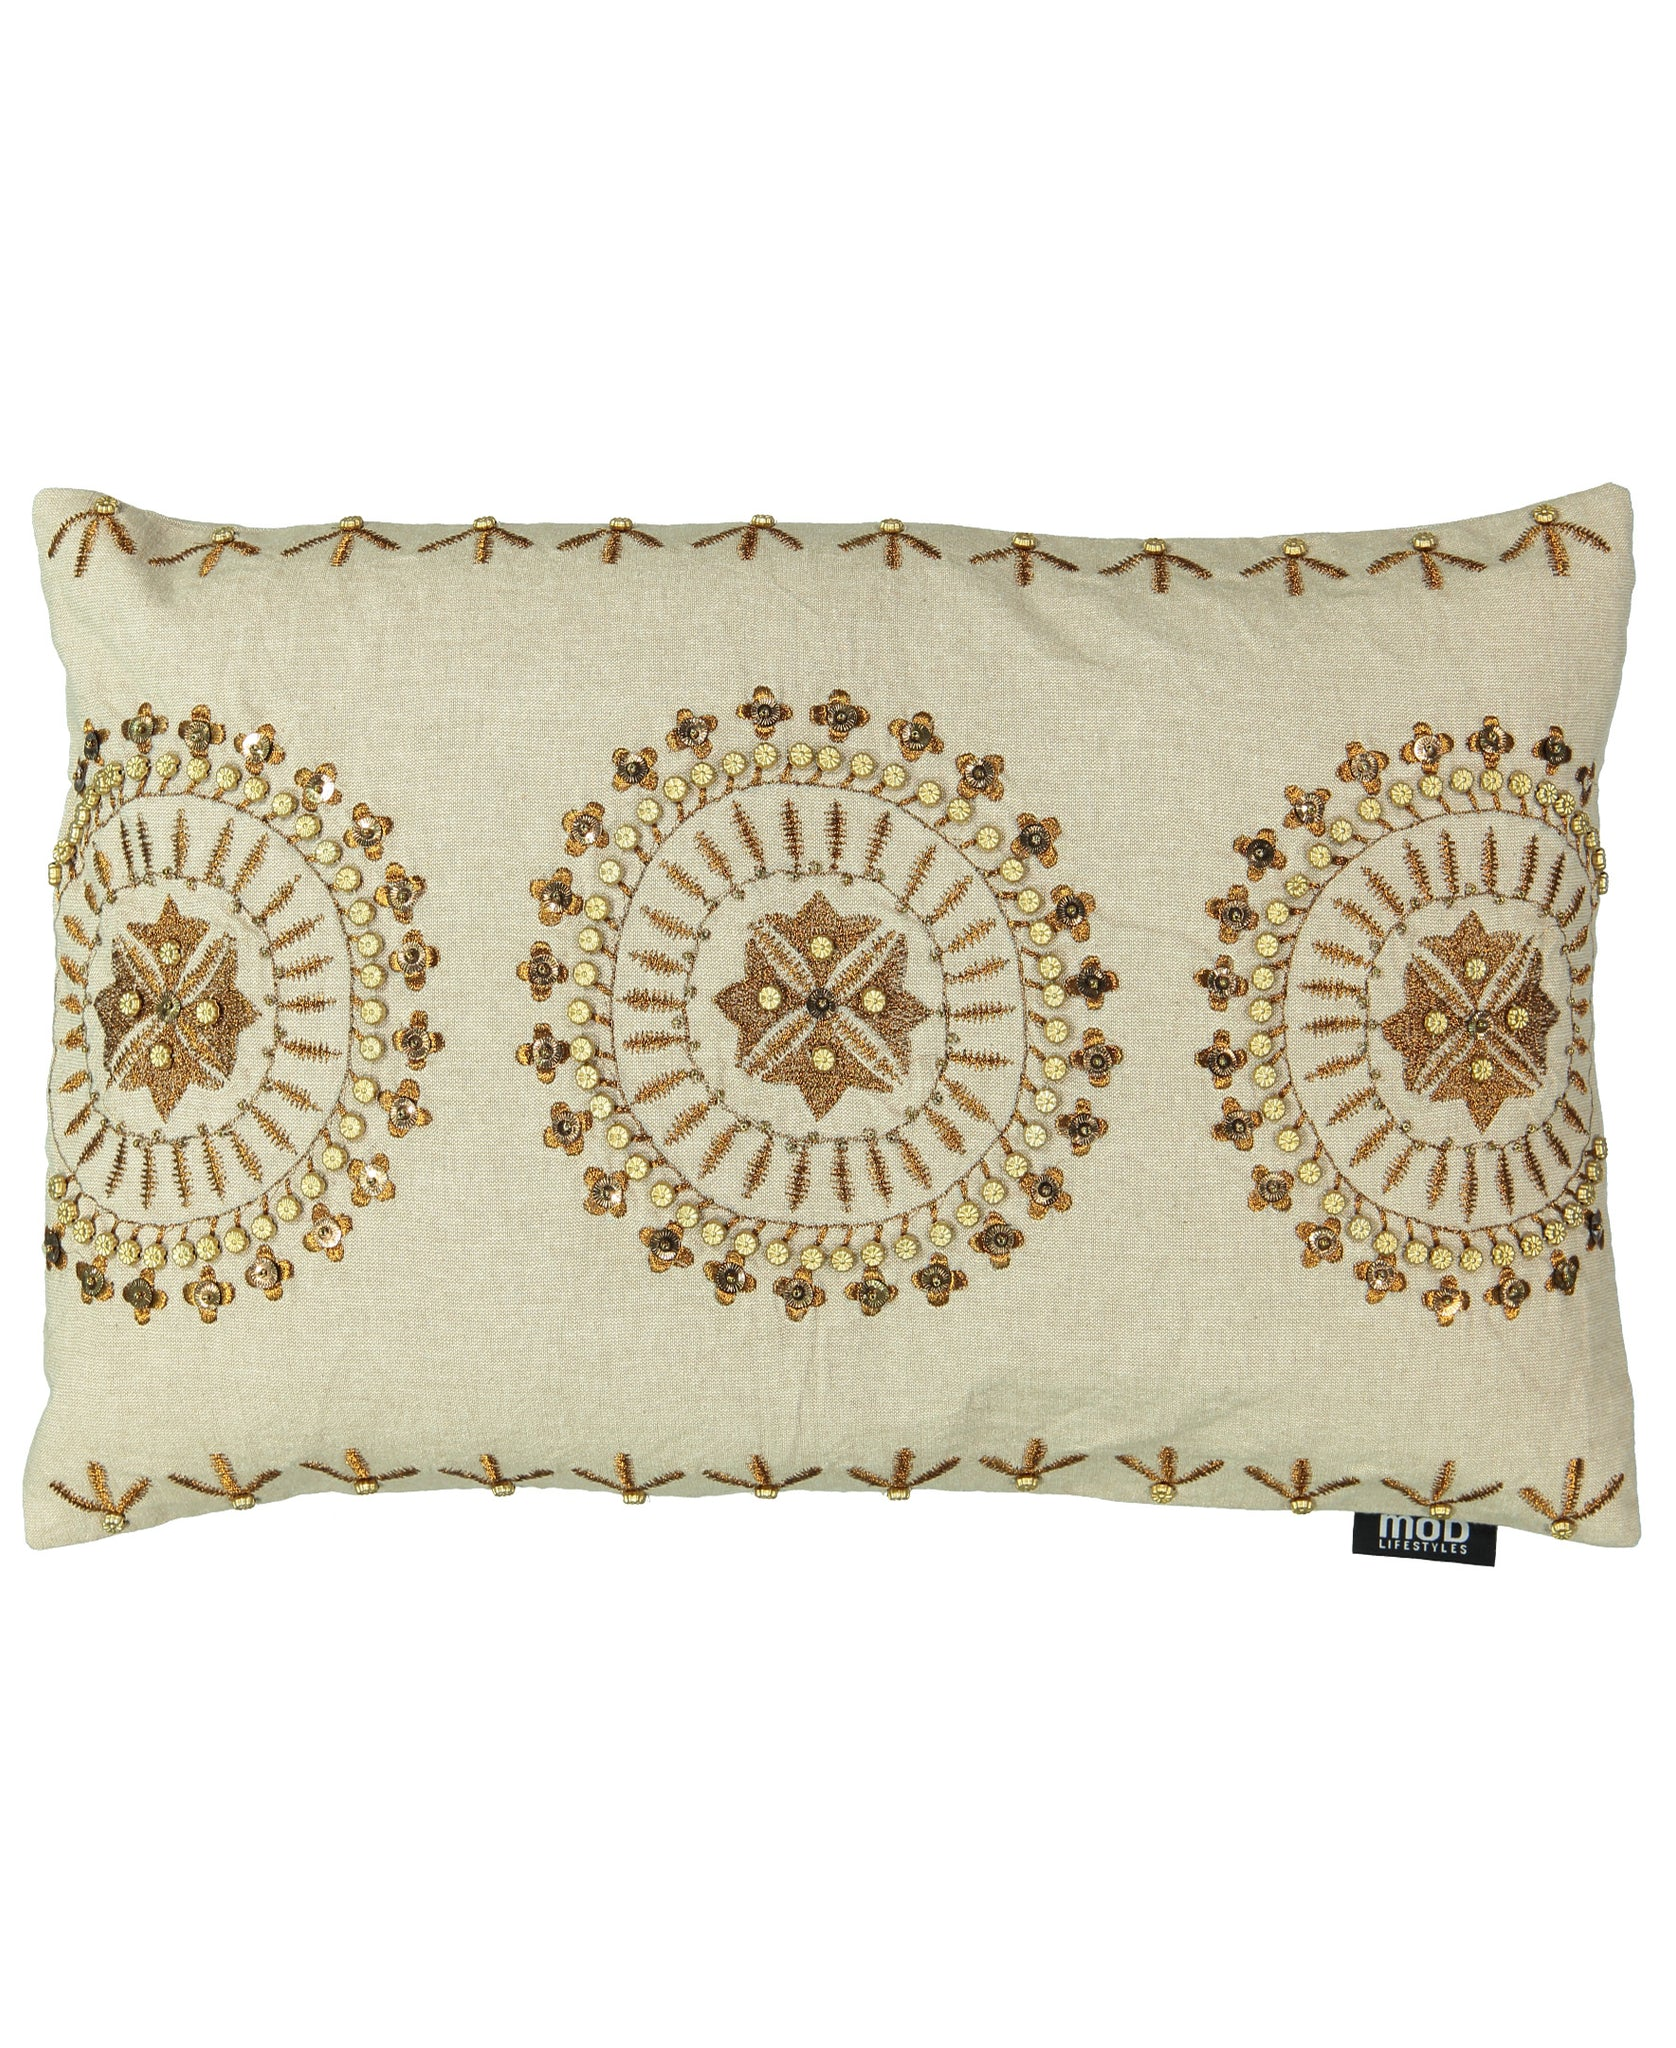 "Gold Medallion Embroidery Decorative Pillow, 14"" X 22"""